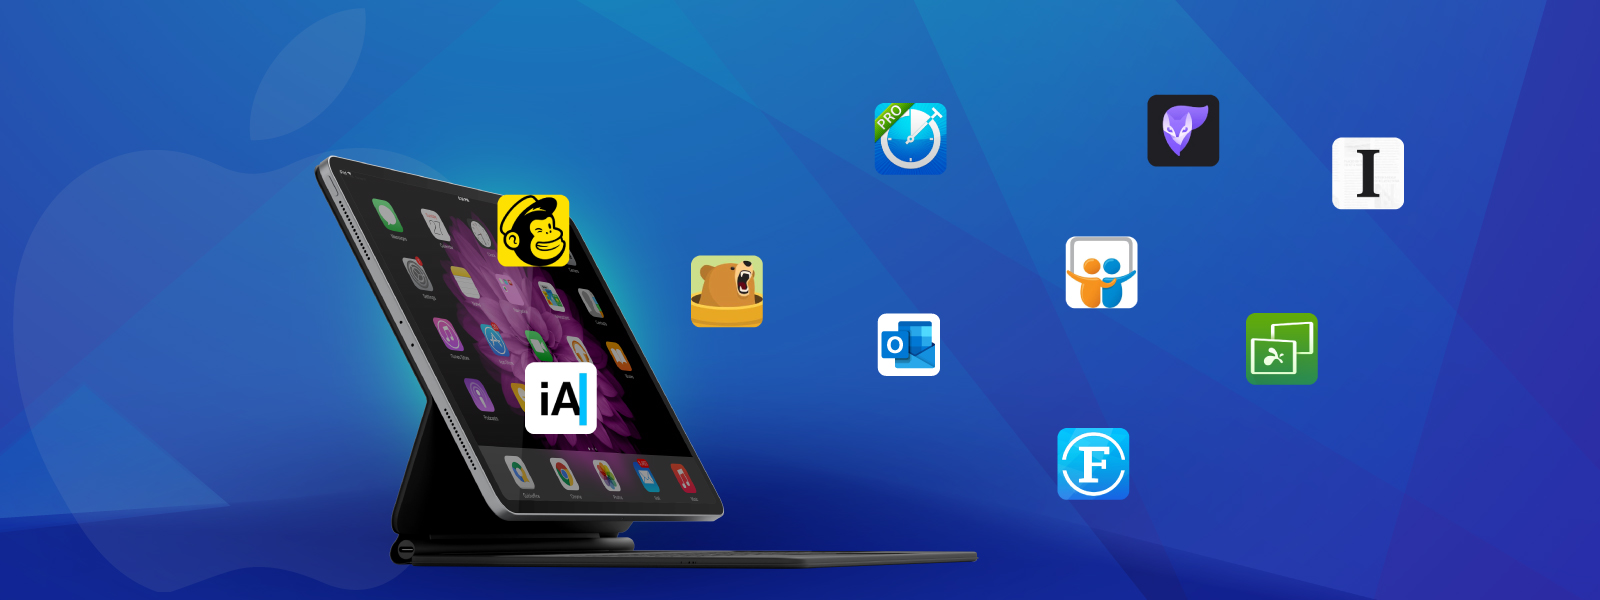 Business Apps for the iPad Pro | Computing Australia